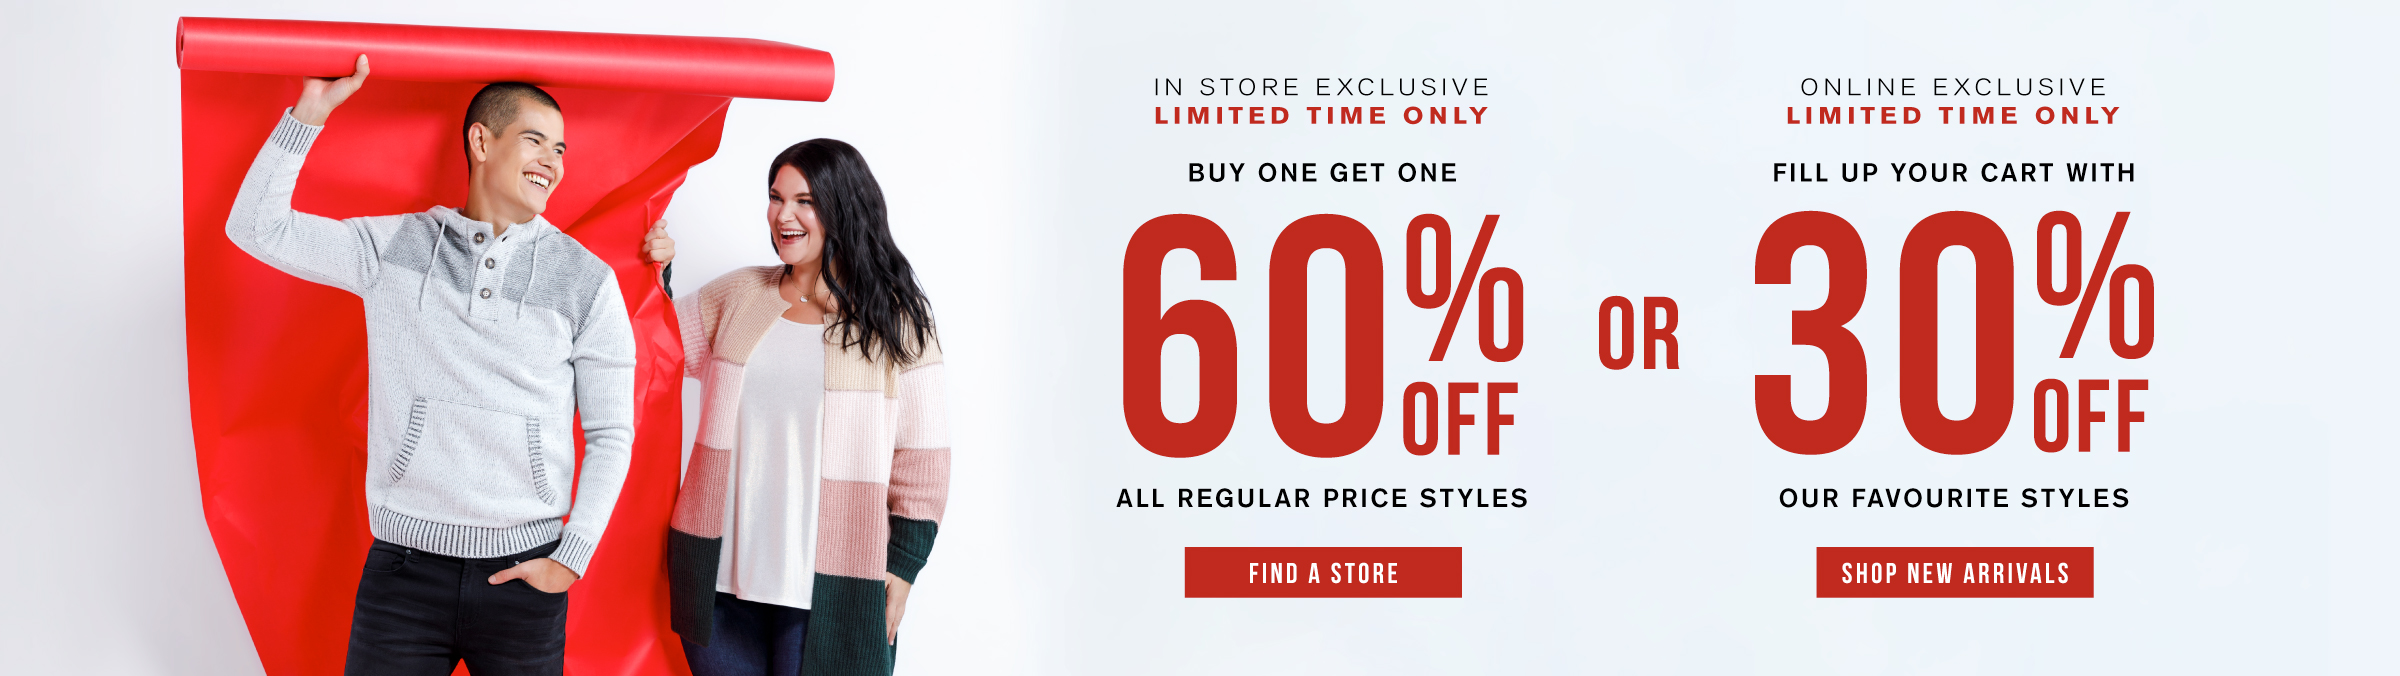 In store exclusive. Limited time only. Buy one get one 60% off all regular price styles. Find a store. Online exclusive. Limited time only. Fill up your cart with 30% off our favourite styles. Shop new arrivals.